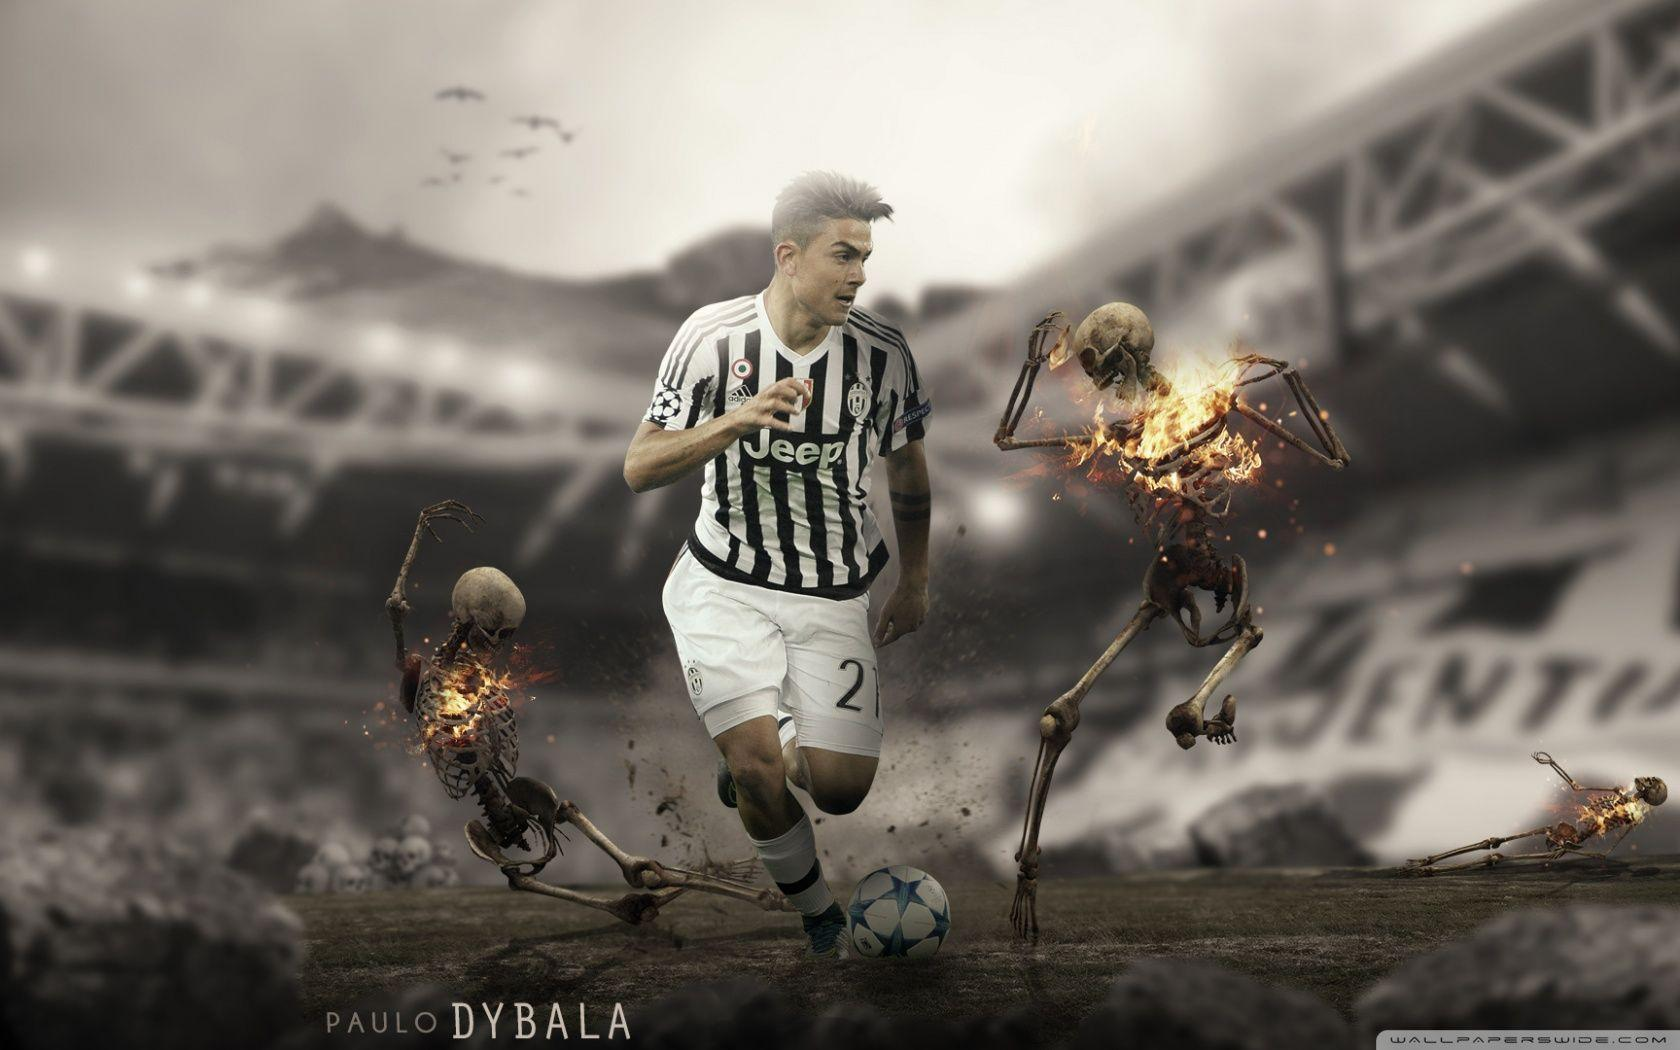 paulo dybala 2016 wallpaper-#17